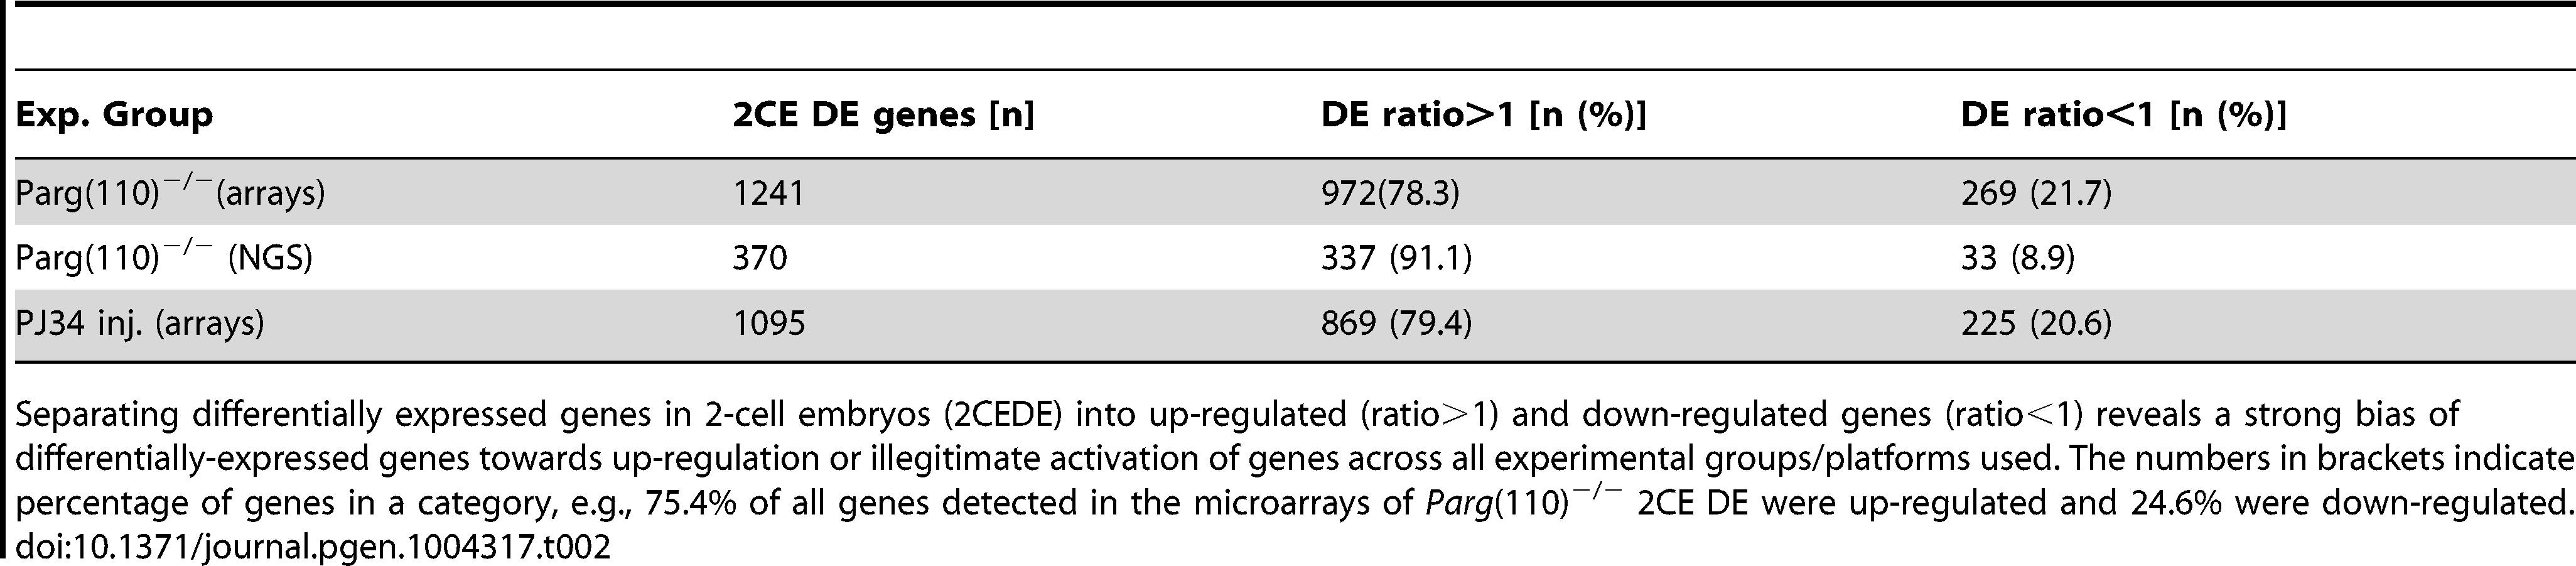 Genes with differential expression in 2-cell embryos.